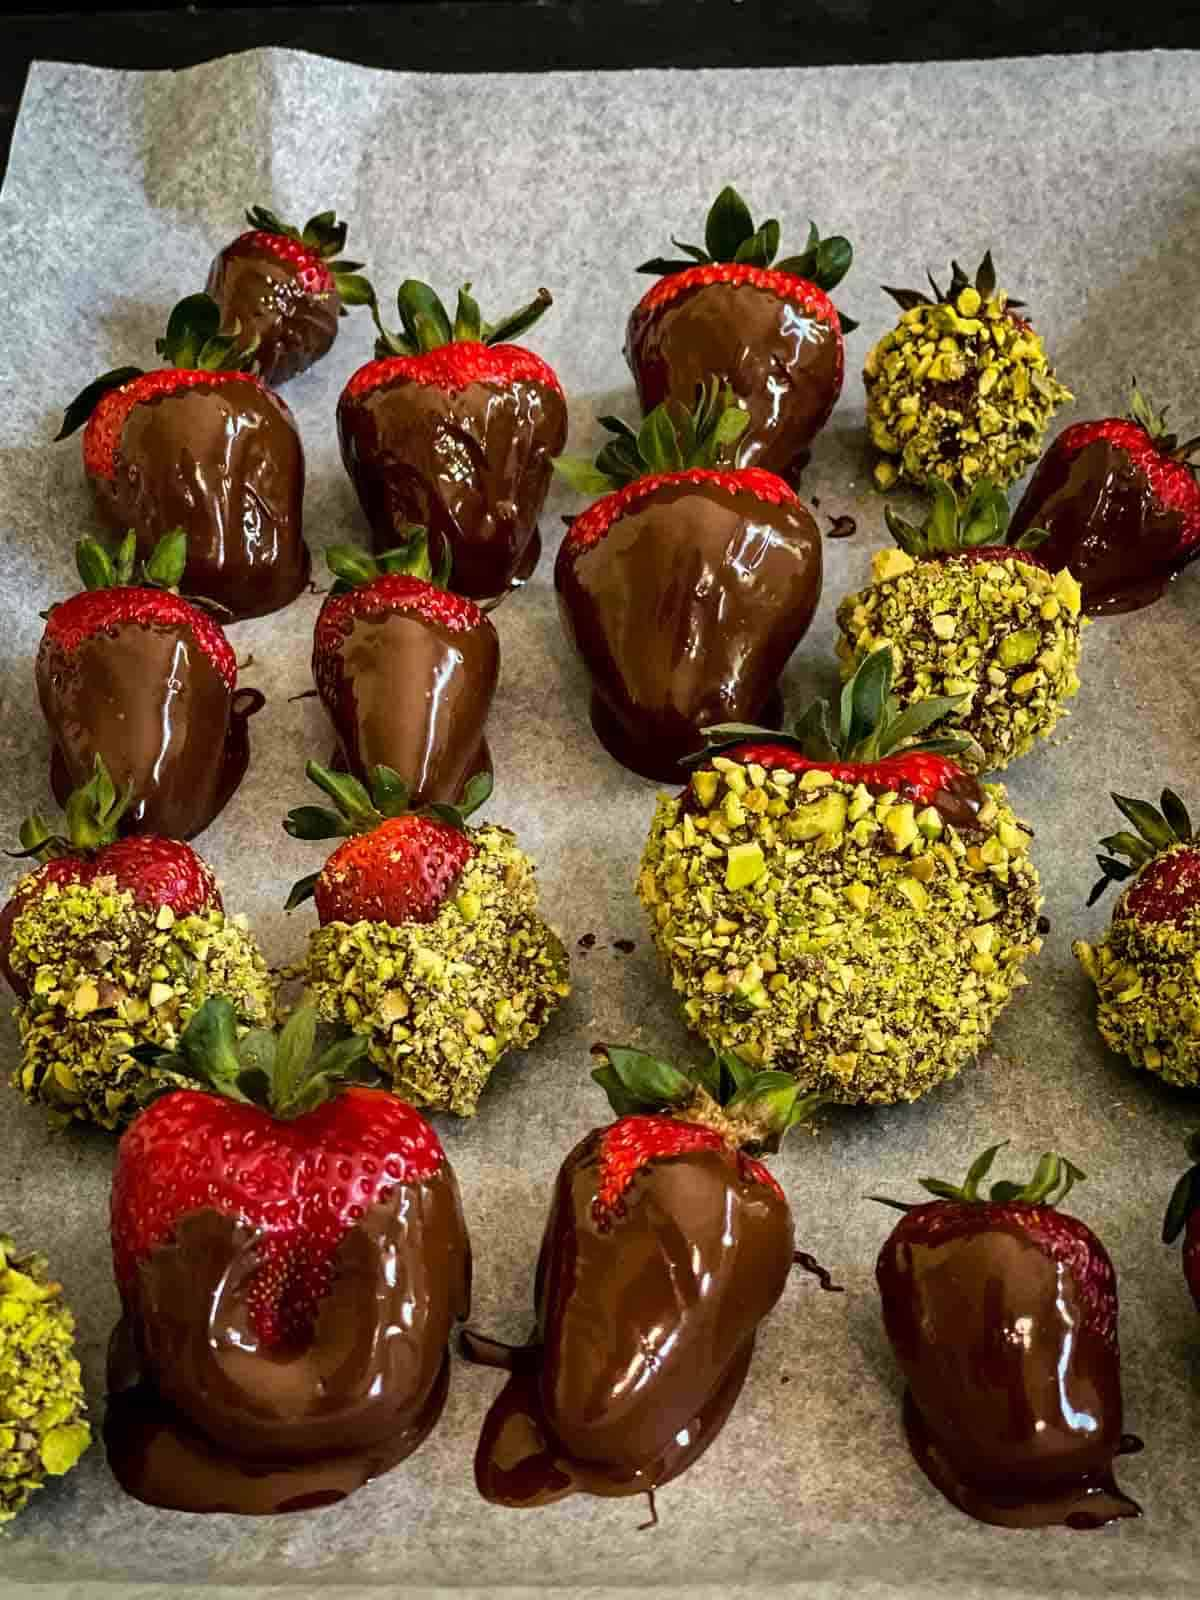 Chocolate and pistachio covered strawberries